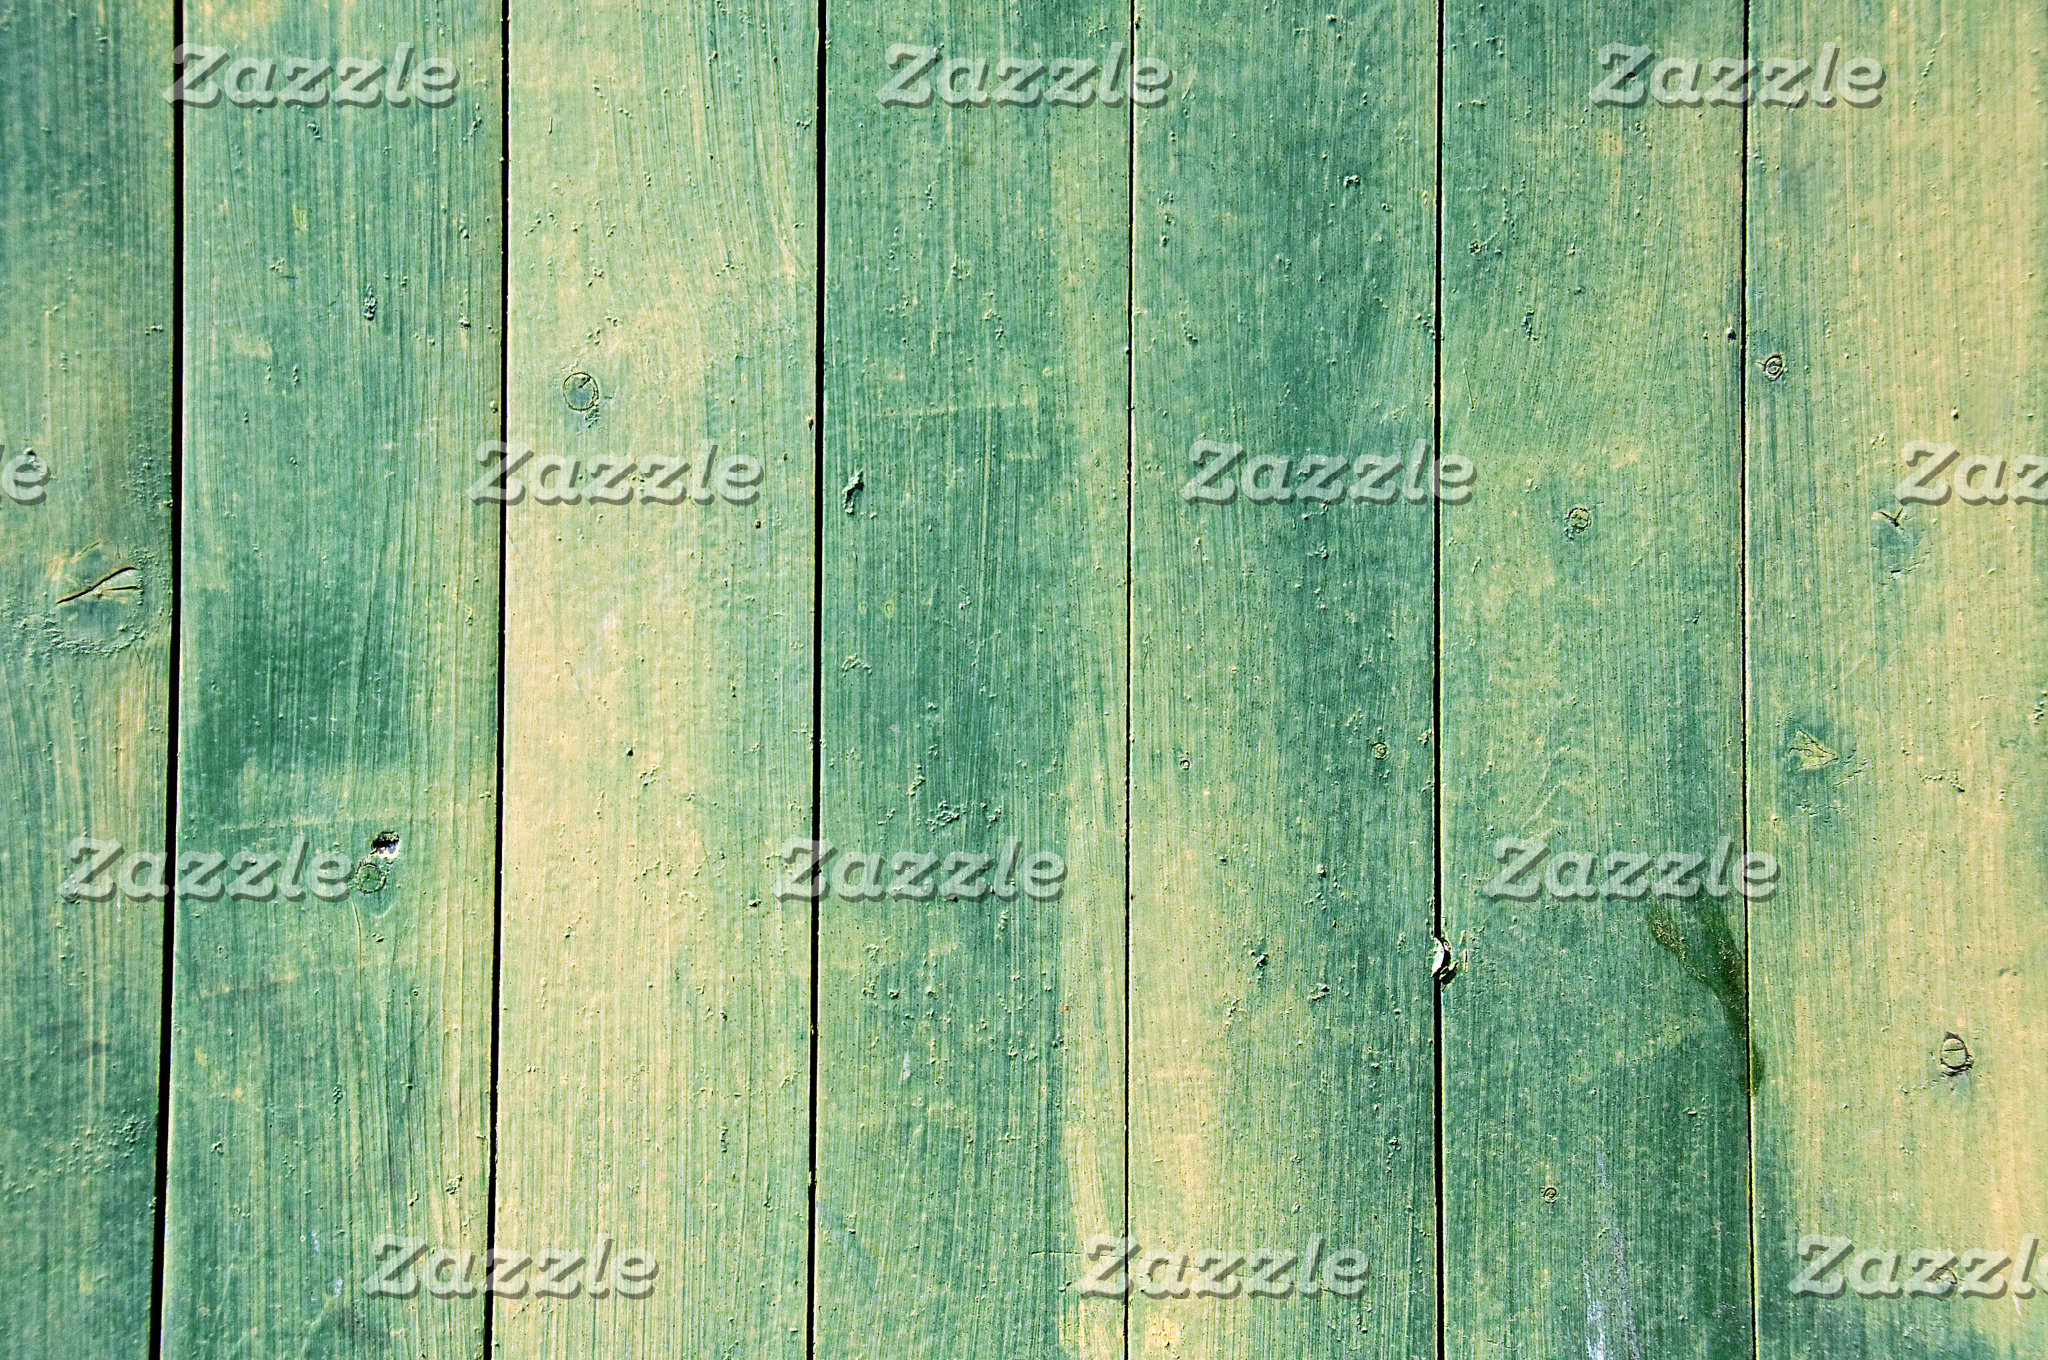 Rustic wooden wall